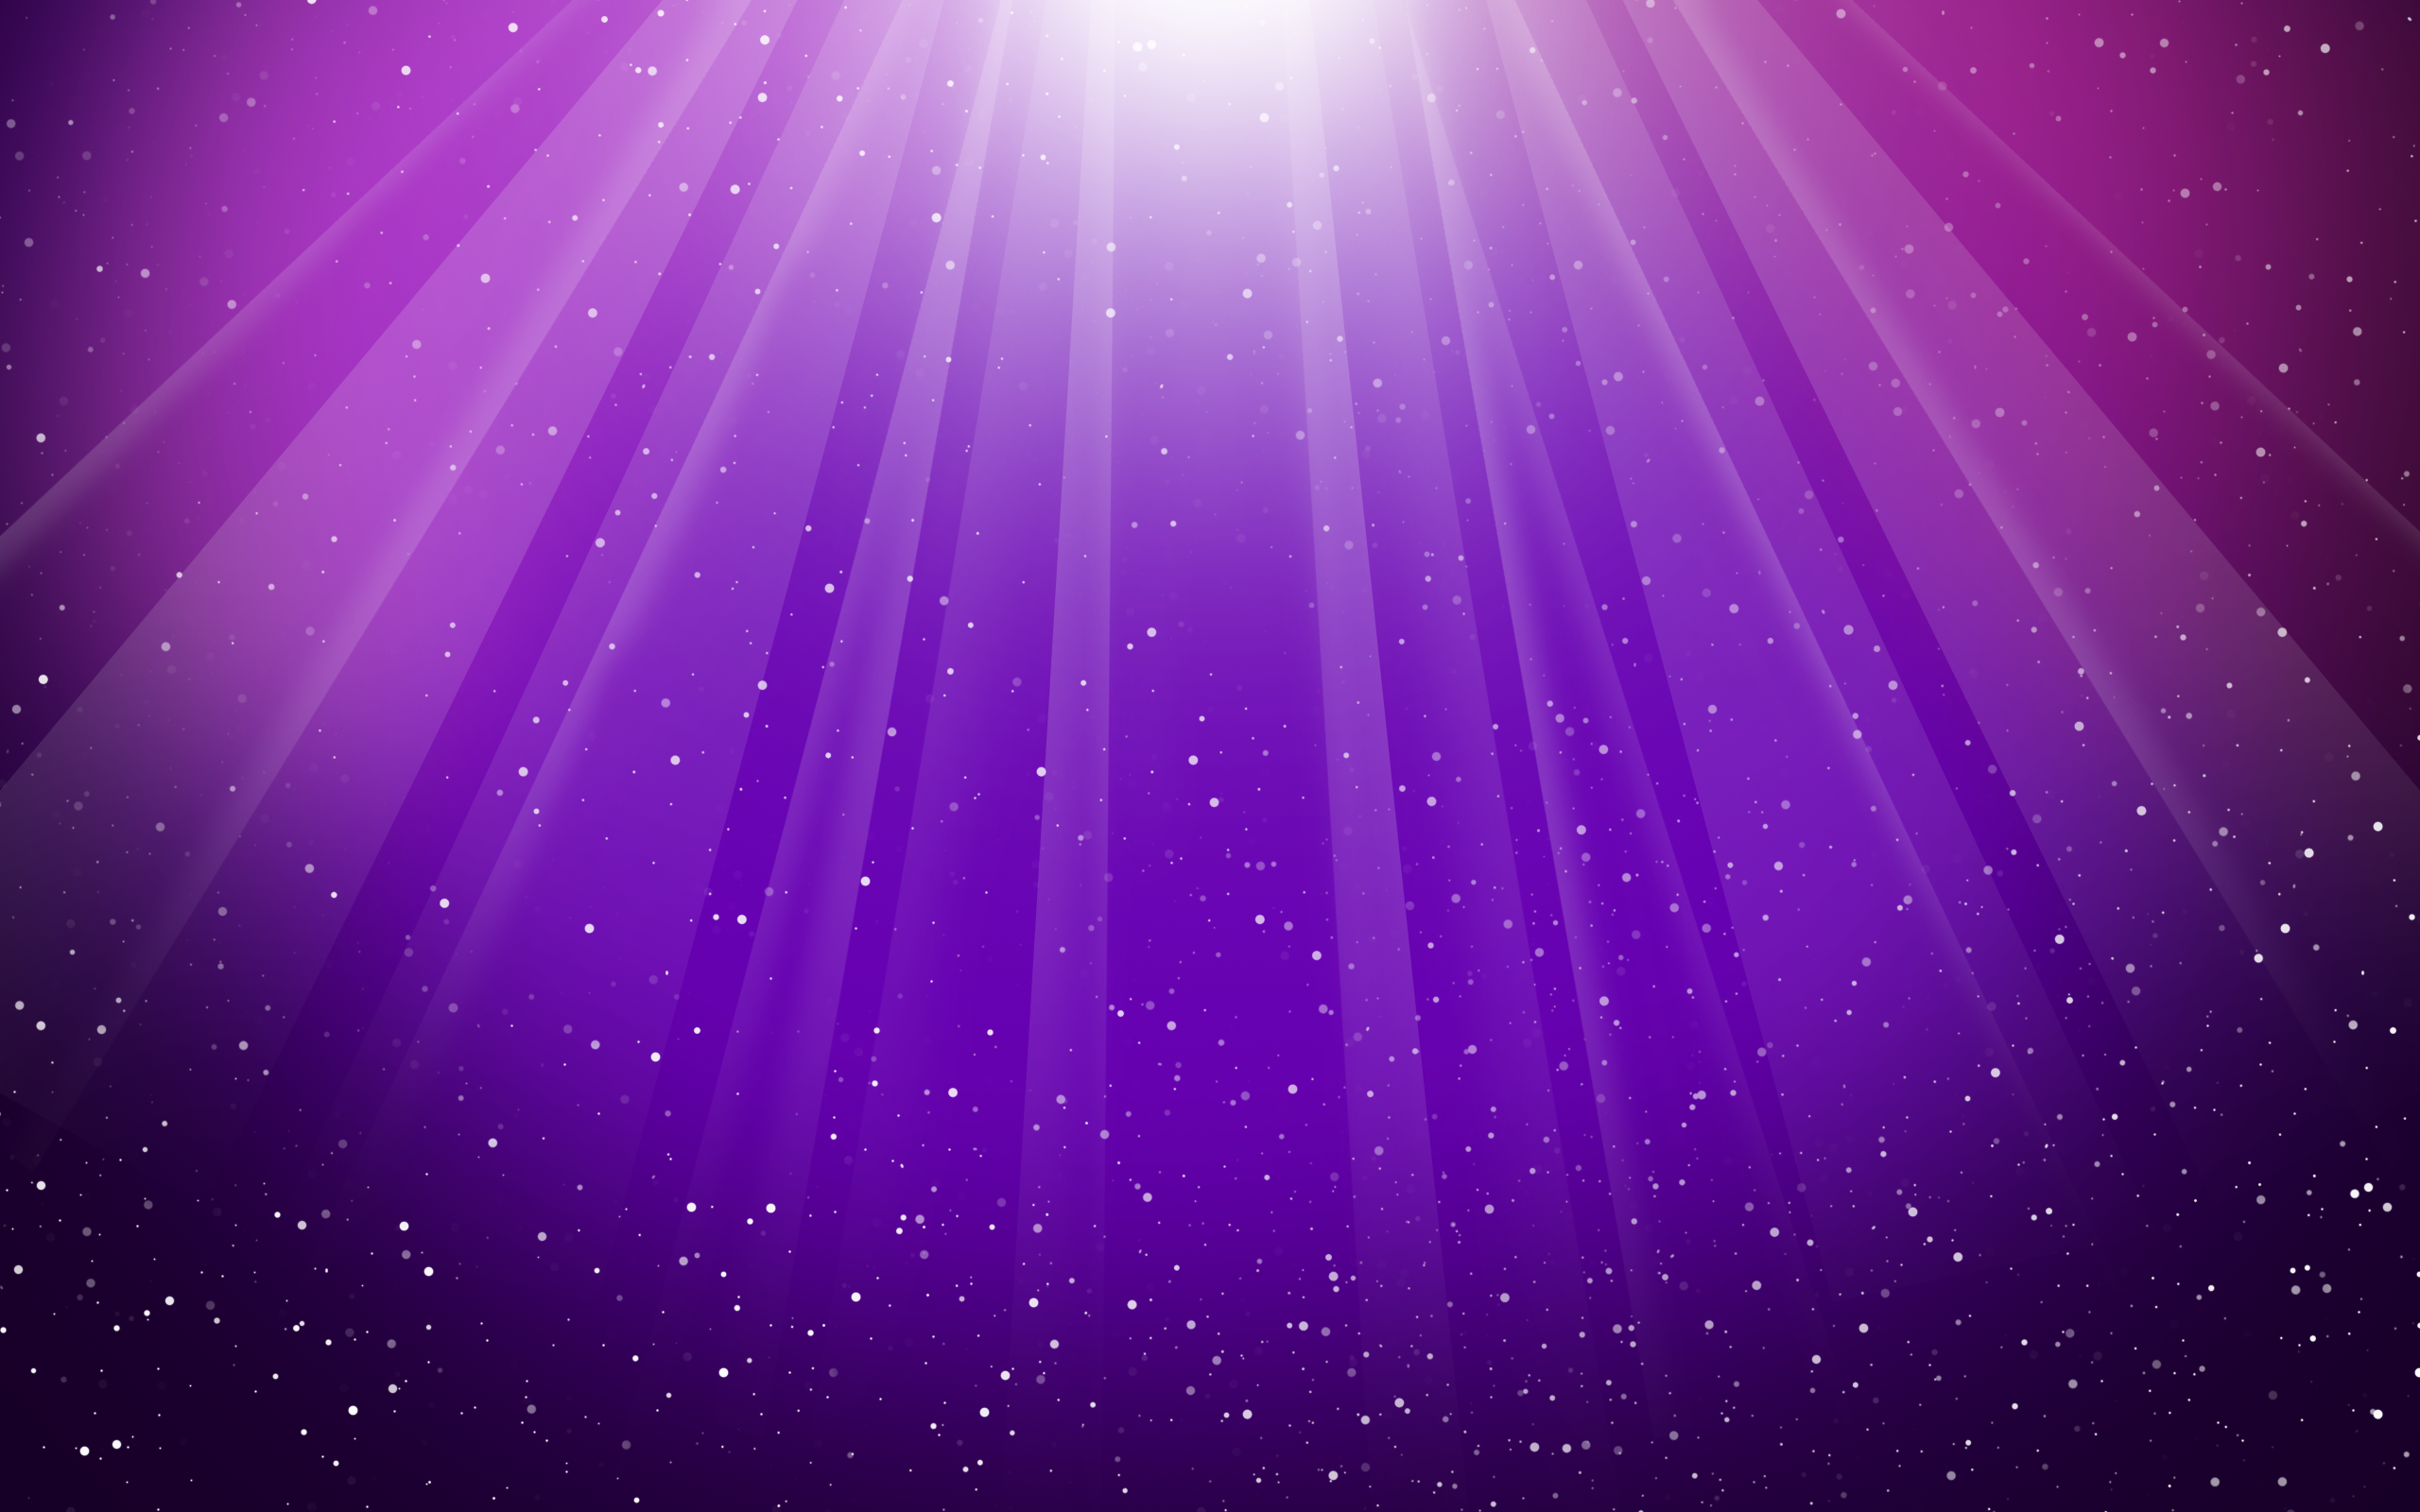 Purple Wallpapers Free